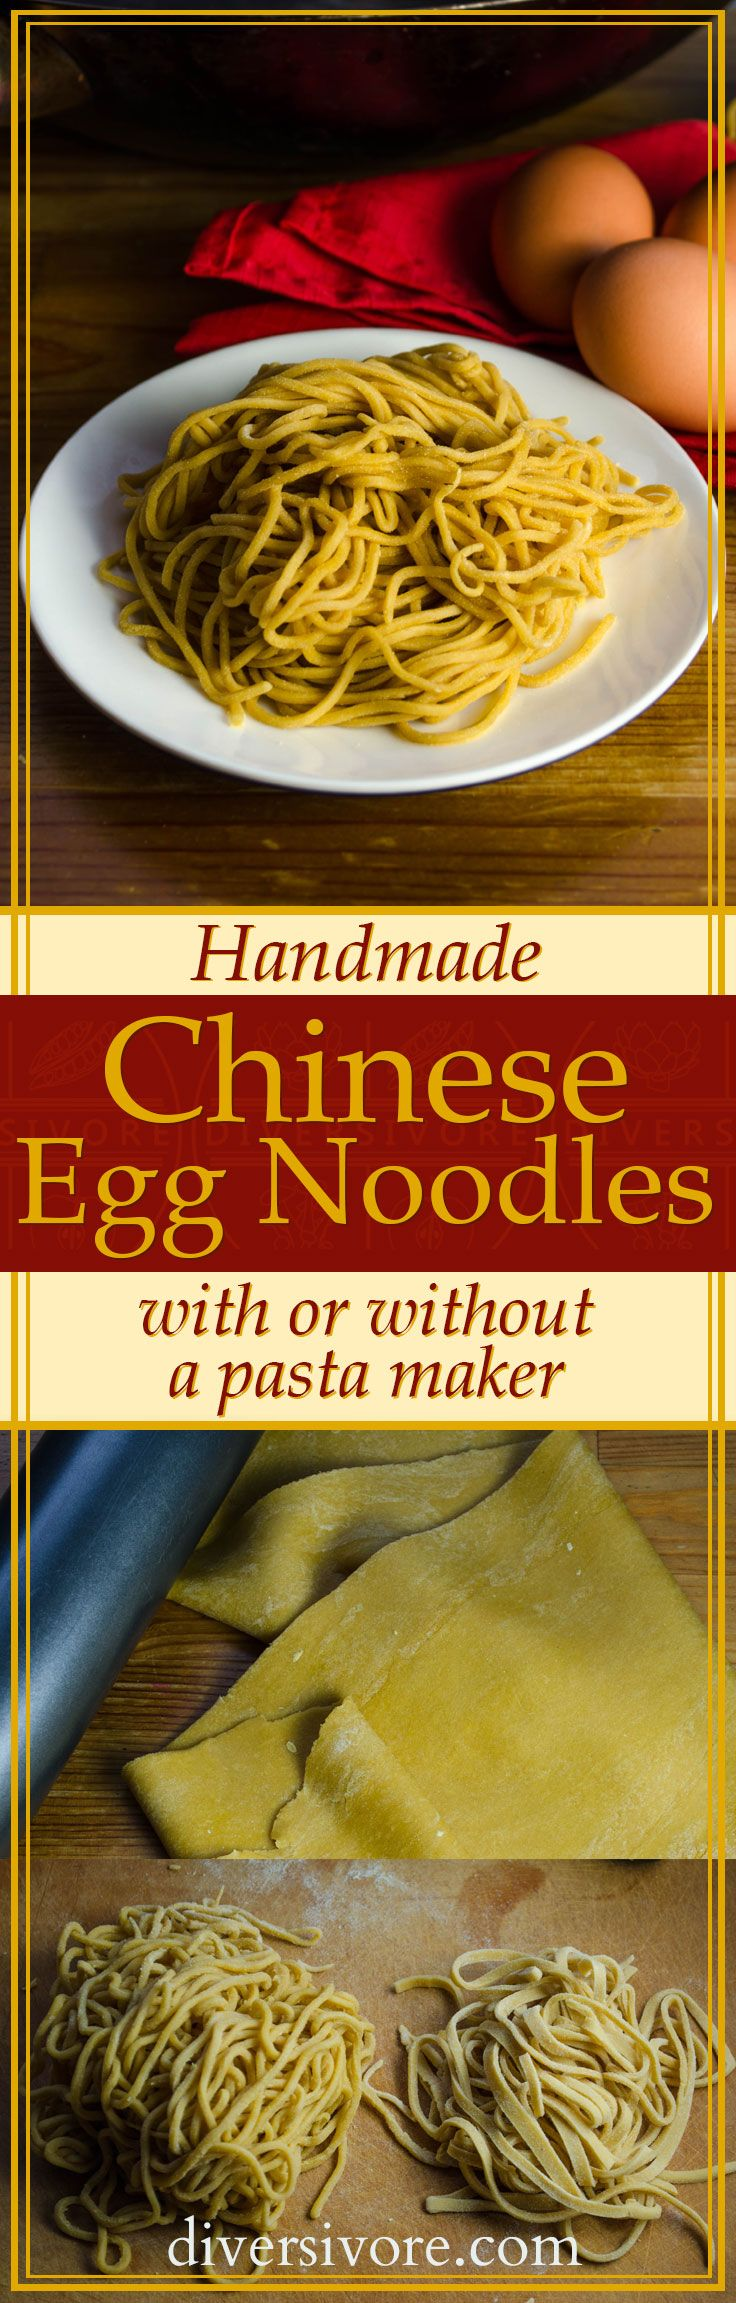 Homemade Chinese Egg Noodles (with or without a pasta maker!) #sponsored by BC Egg #ChineseFood